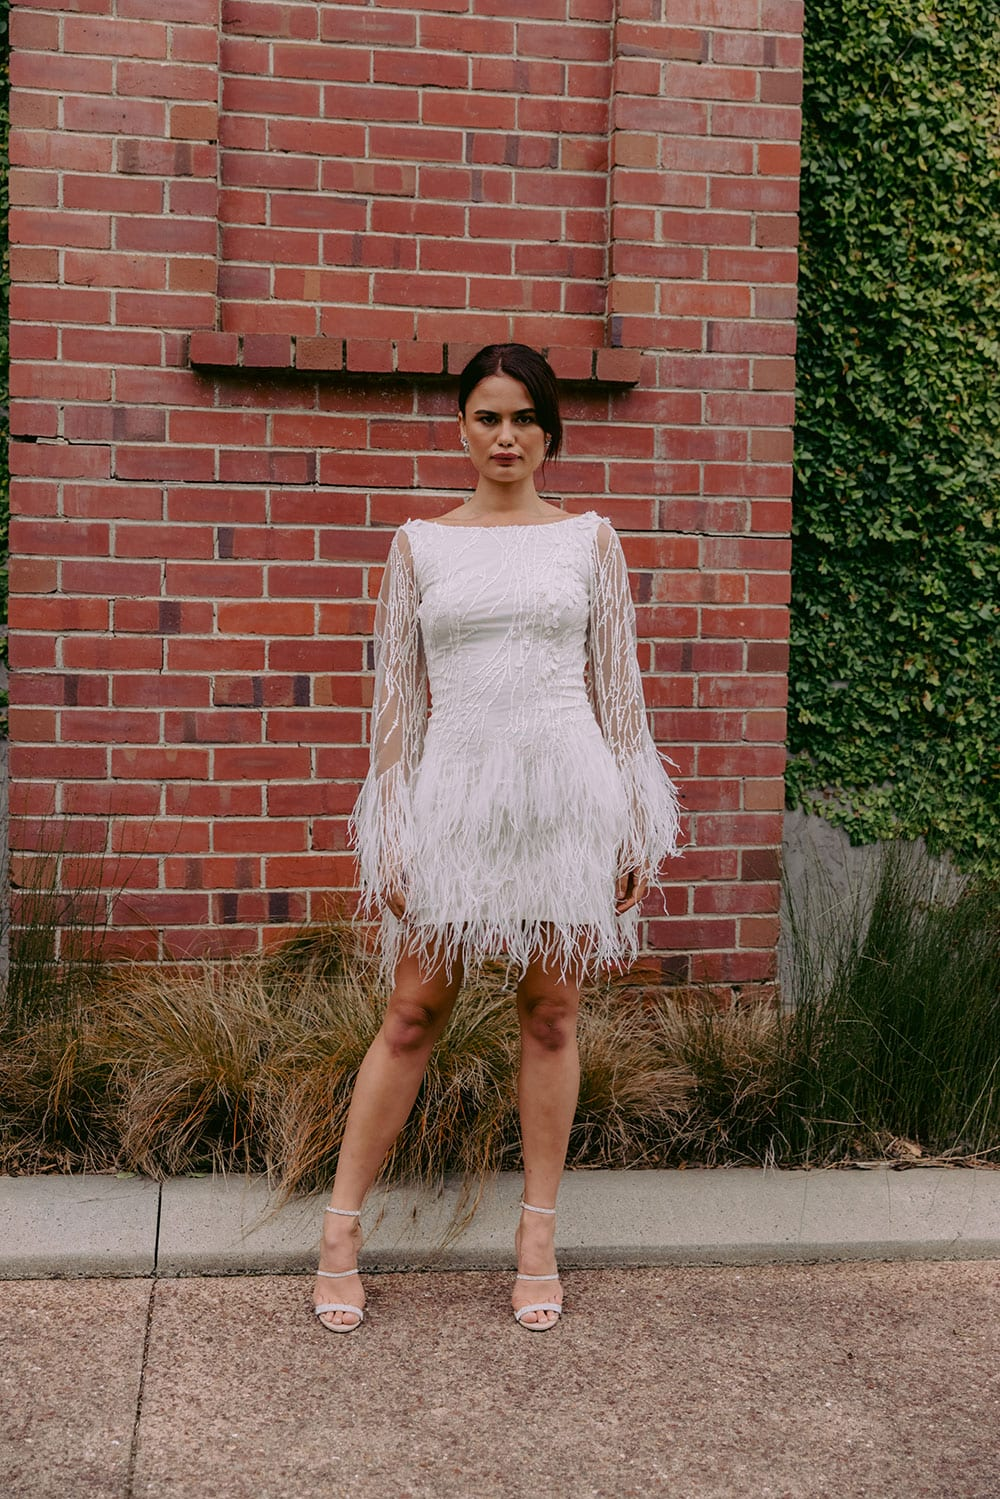 Nikora Wedding gown from Vinka Design - This sexy gown is sure to turn heads! Adorned with feathers that accentuate movement and bell sleeves that add flare, a high neckline, and low back. Model wearing gown against brick wall near Auckland.